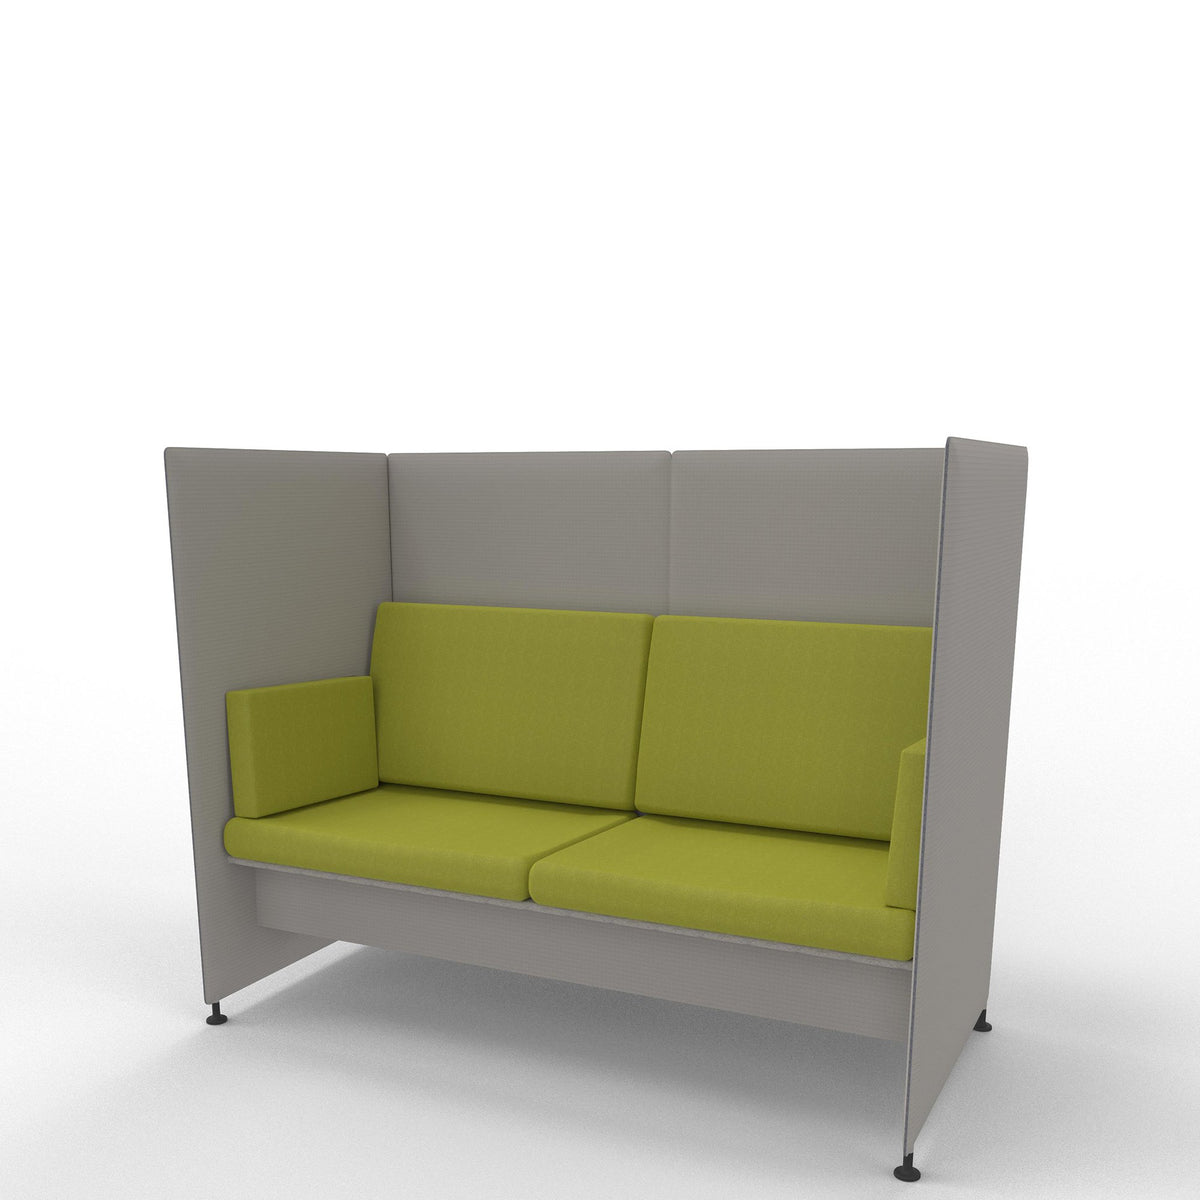 Edsbyn Ease Sofa Pod with Pear Cushions